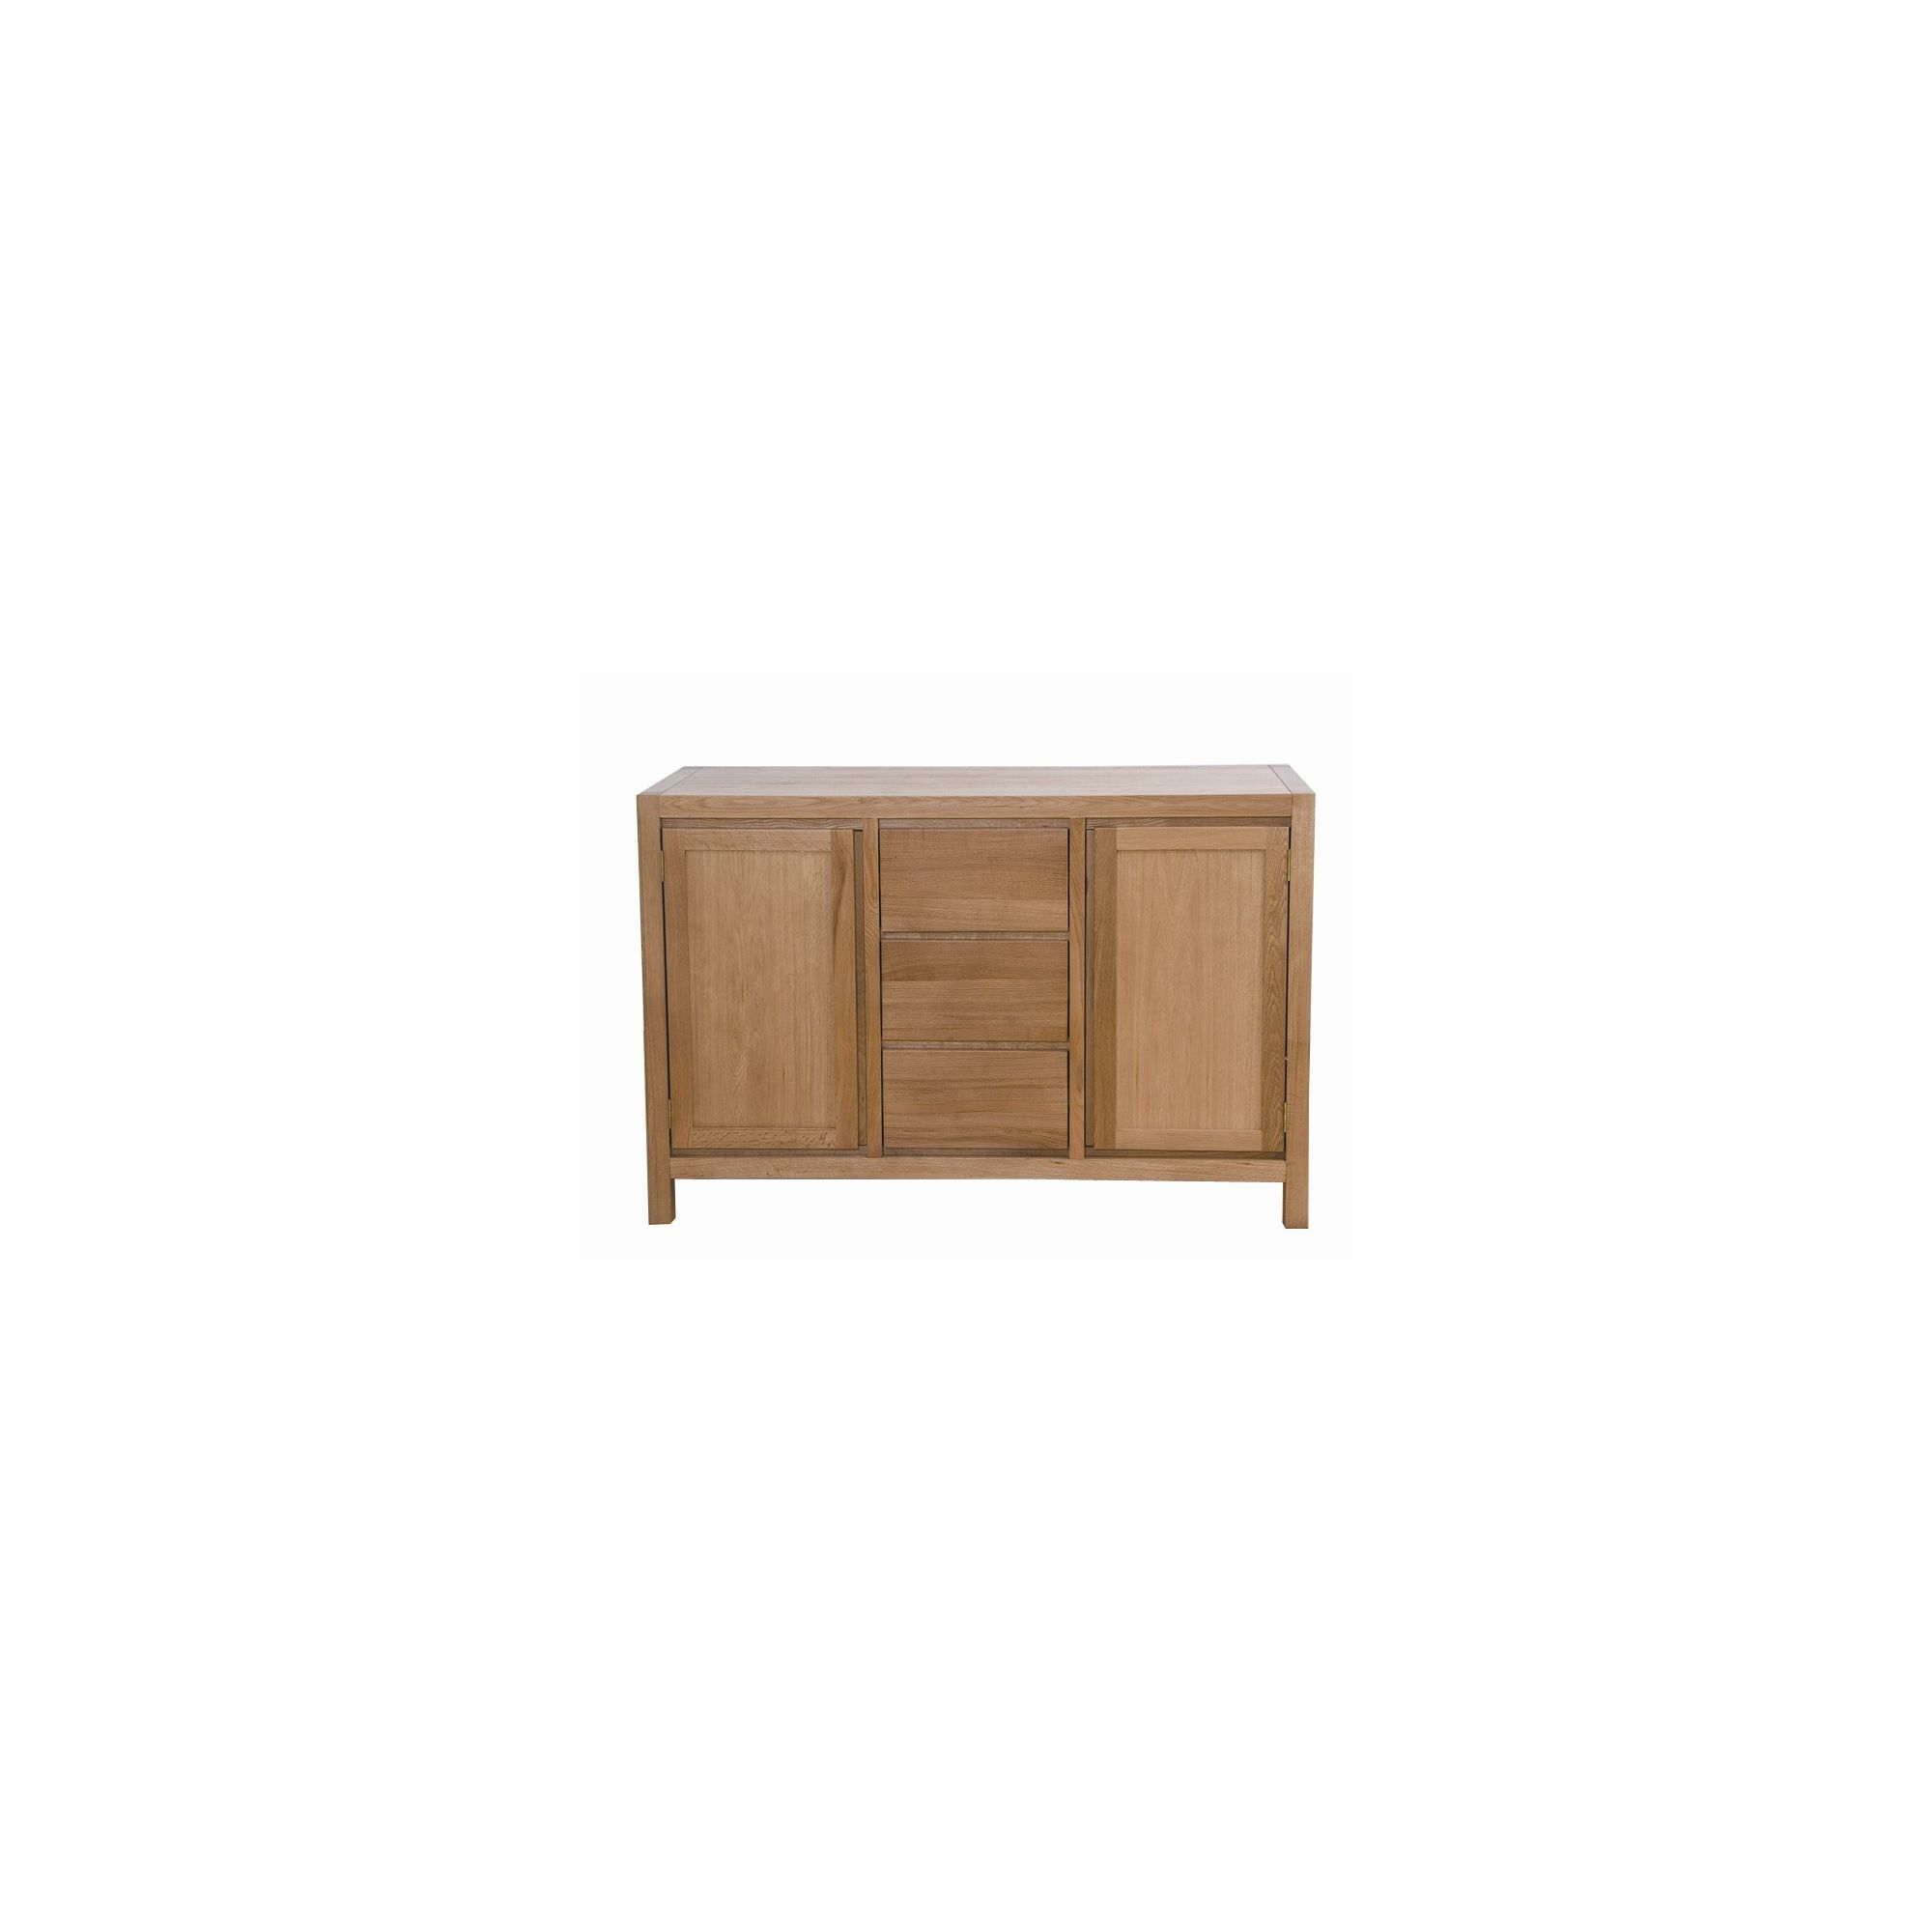 G&P Furniture Large Oak Sideboard at Tesco Direct